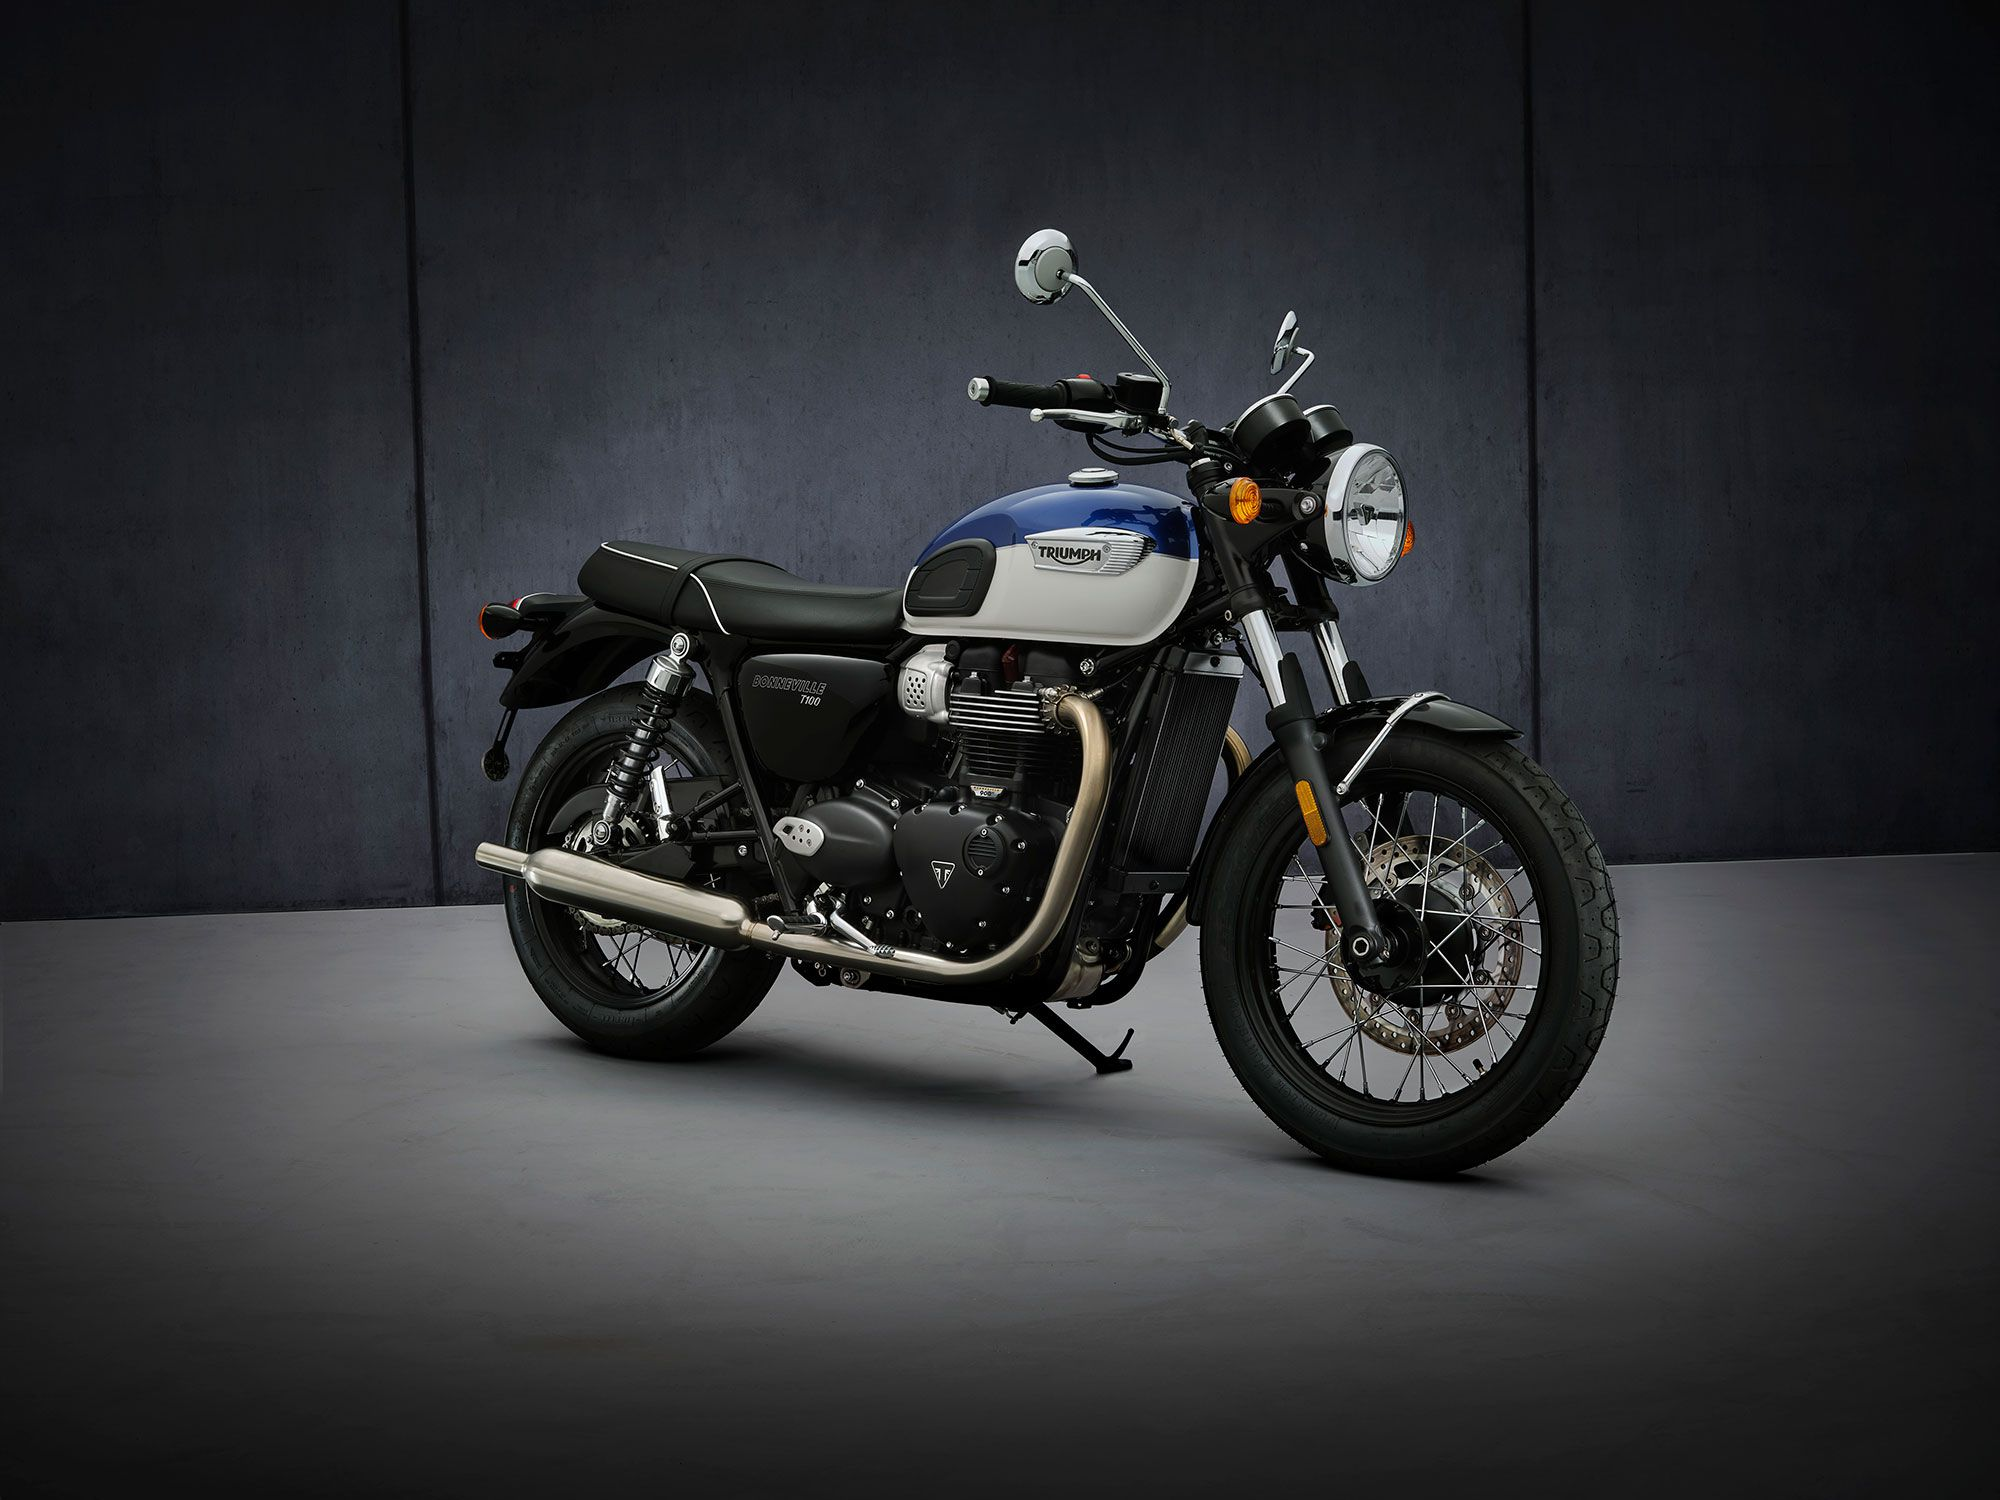 The Triumph T100 gets a power boost and better braking components in 2021.